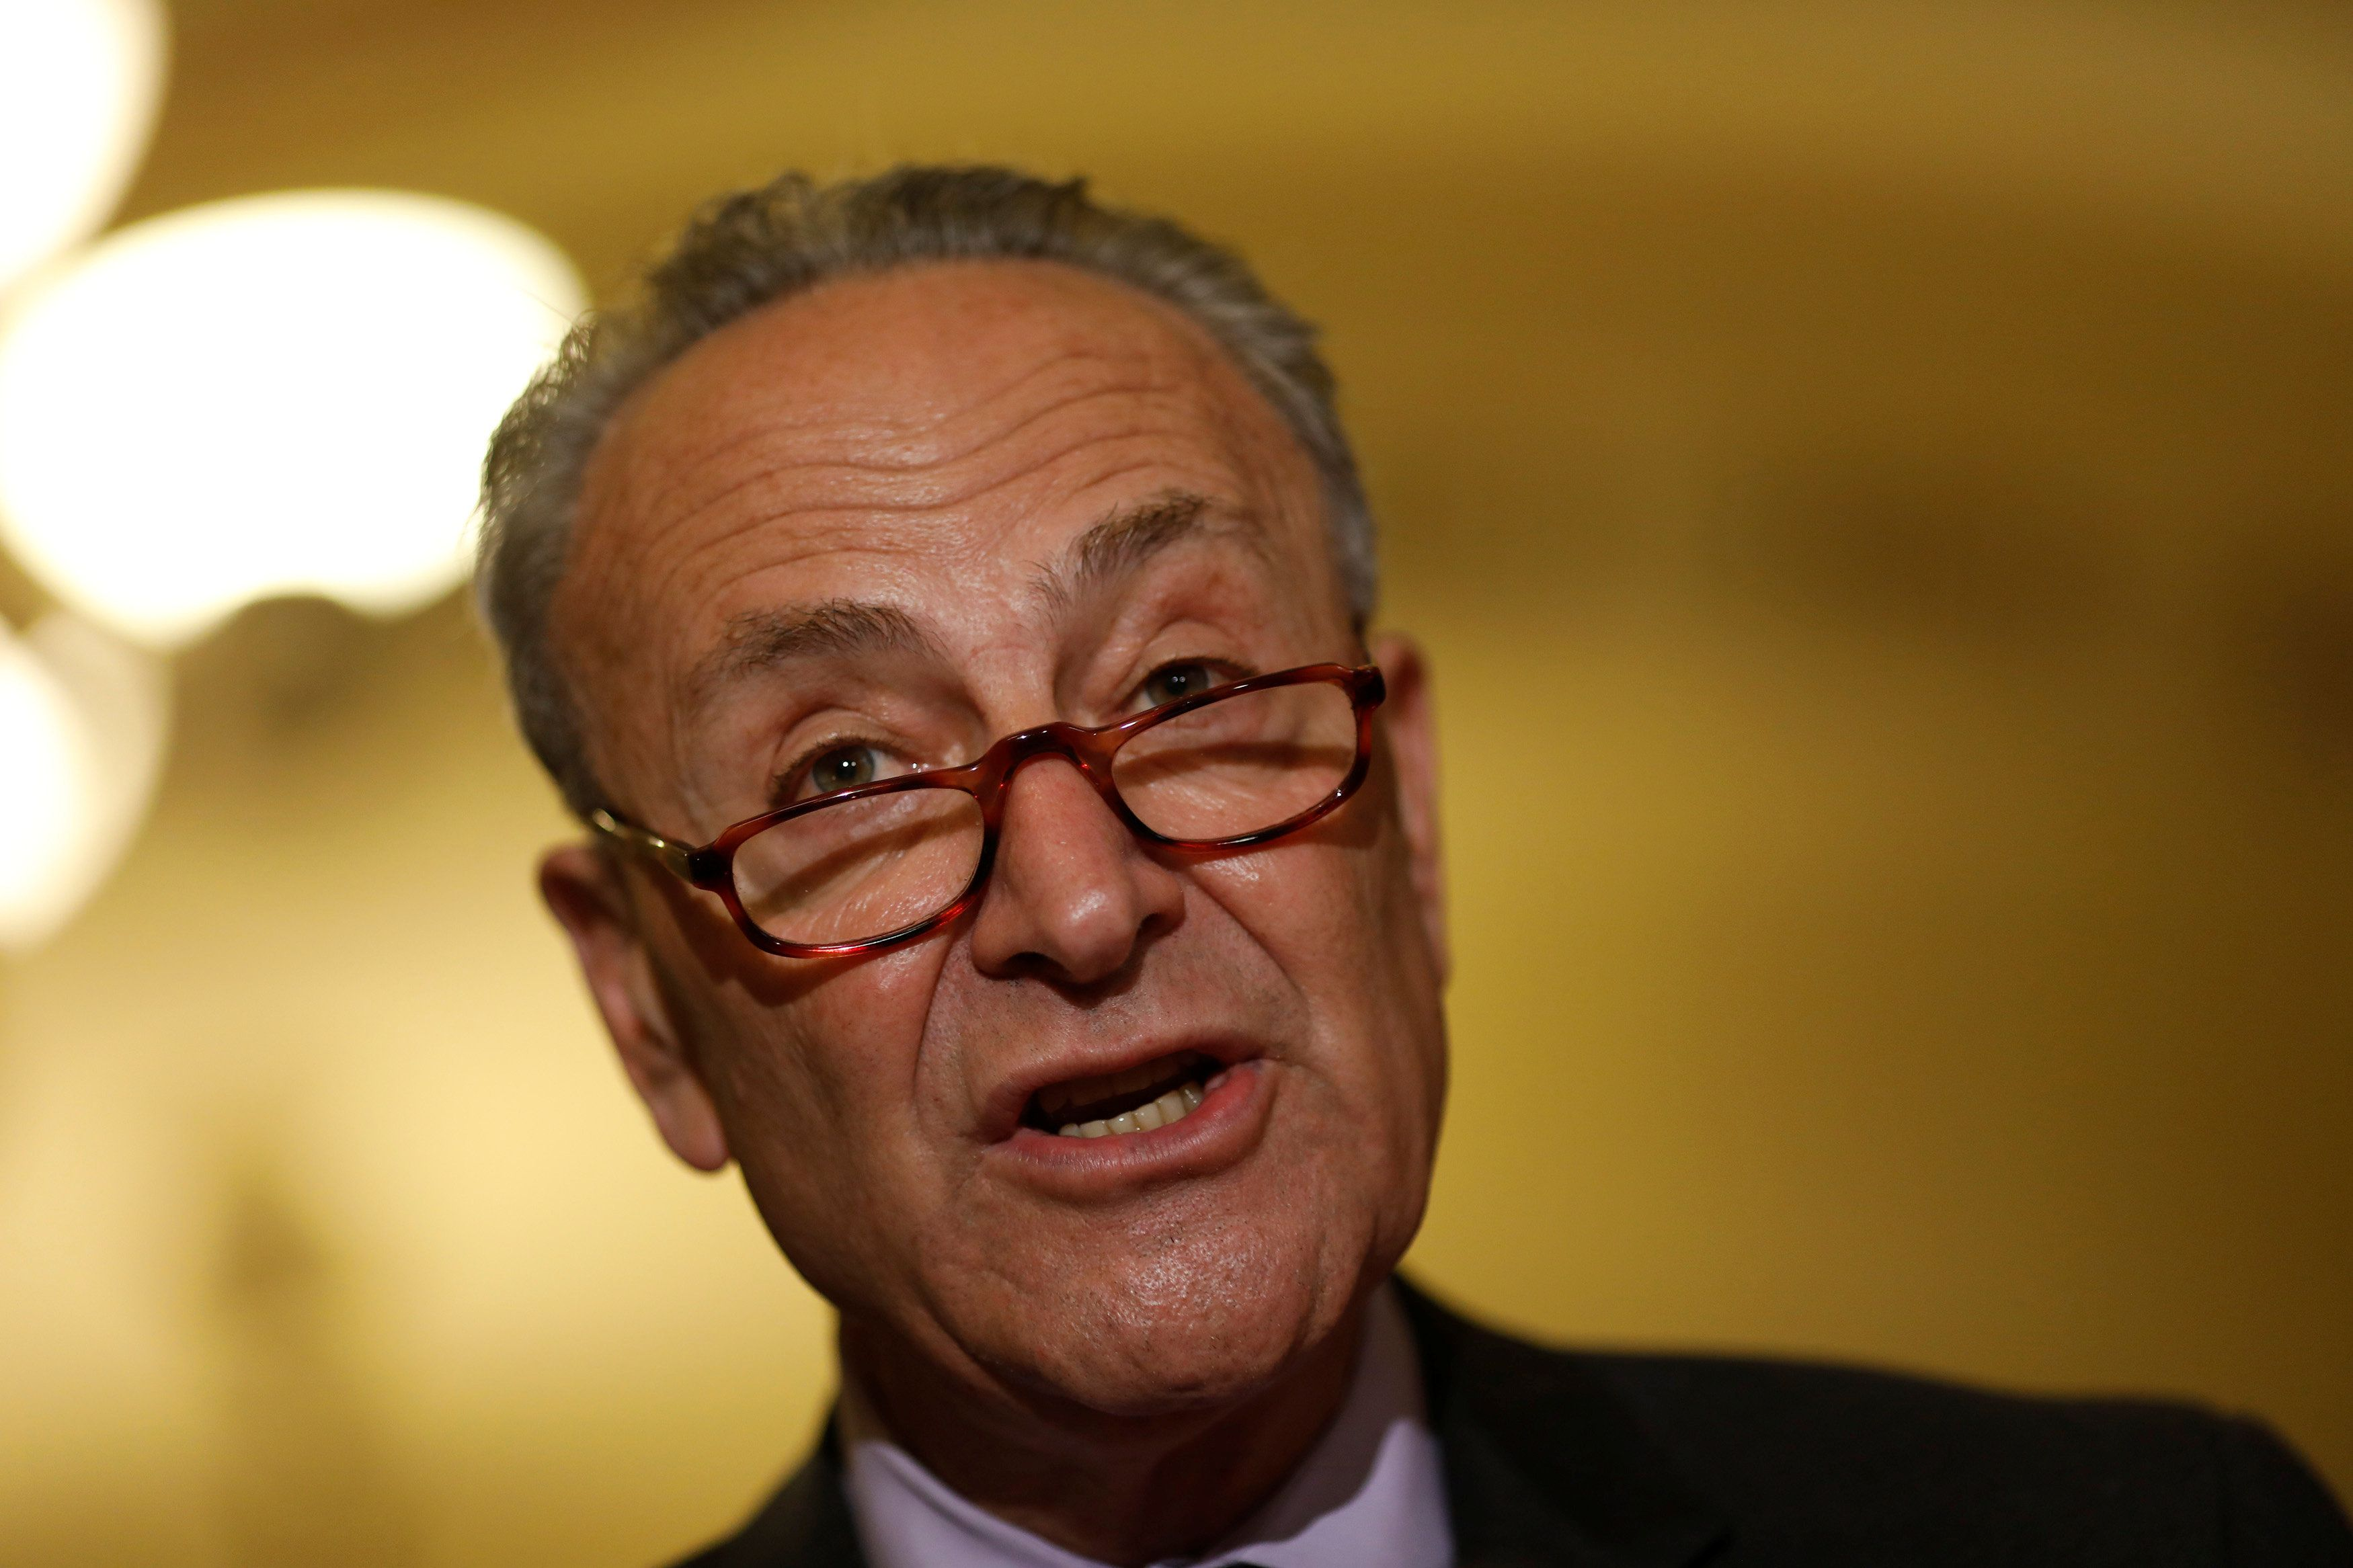 Senate Minority Leader Chuck Schumer (D-N.Y.) says antitrust law reform is a major plank in Democrats' populist-leaning